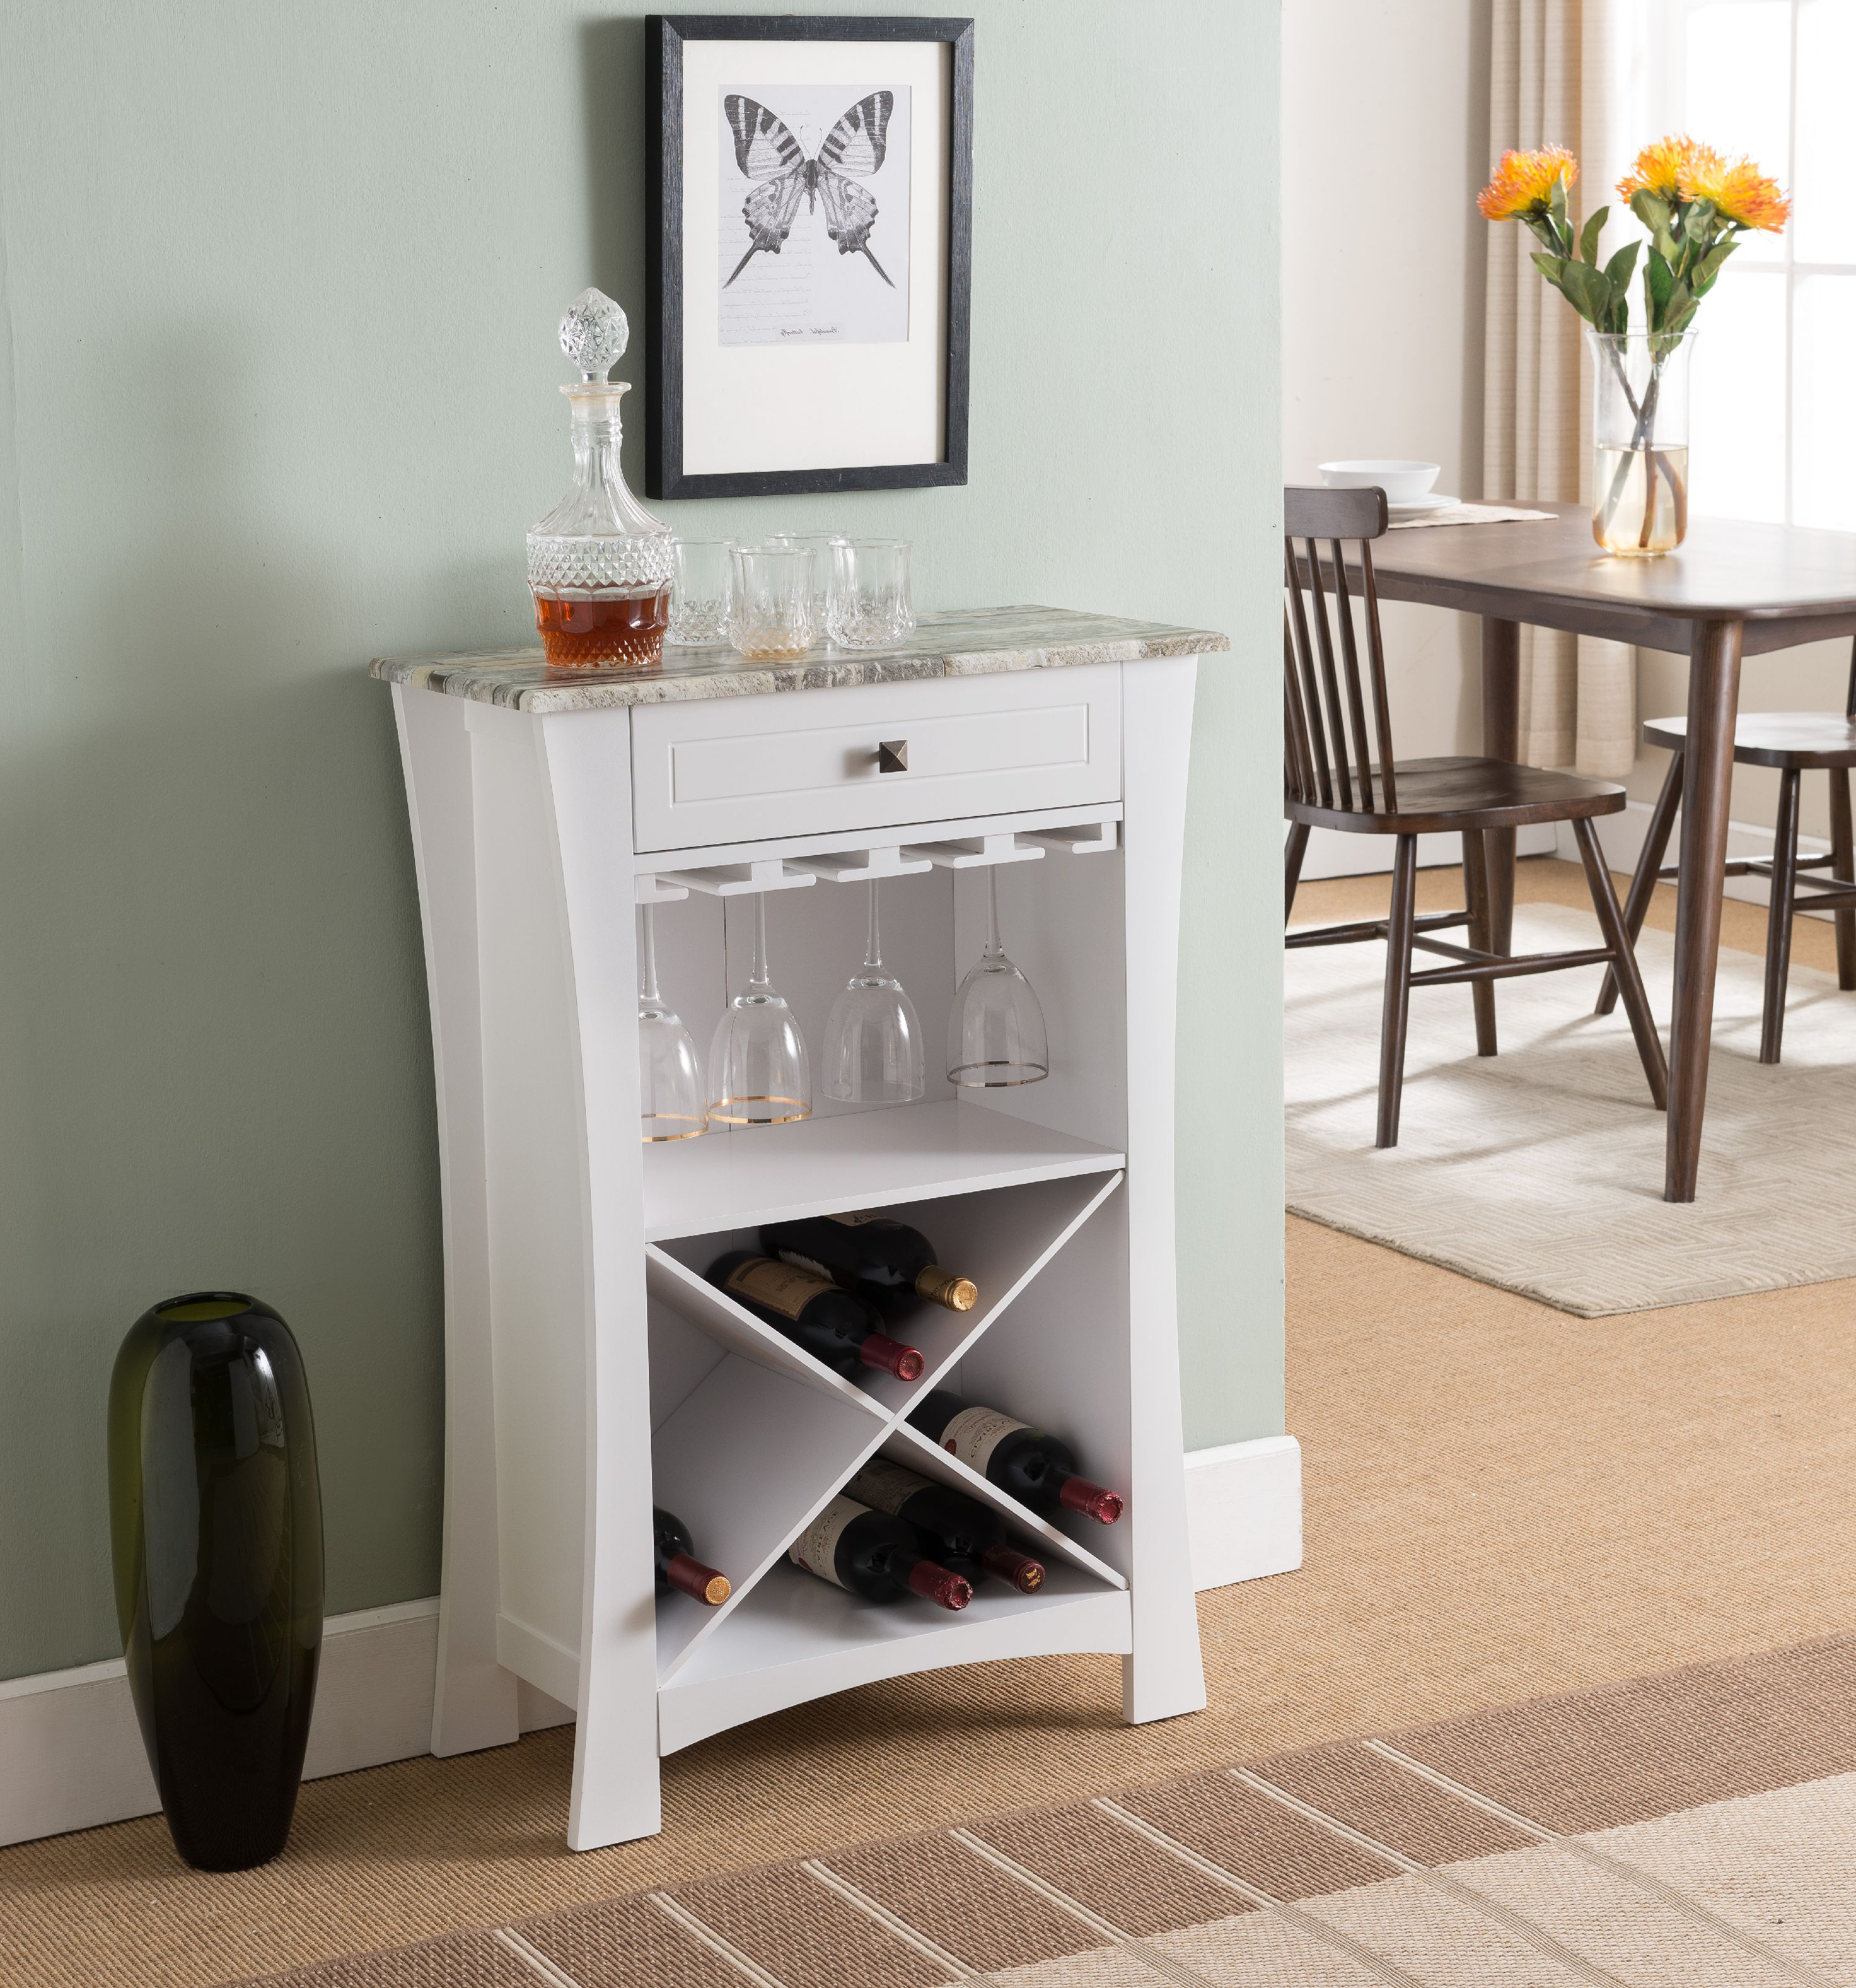 Wine Holder Stand Jasper White Marble Wood Transitional Wine Rack Buffet Display Stand With Cup Holders Drawer Shelves